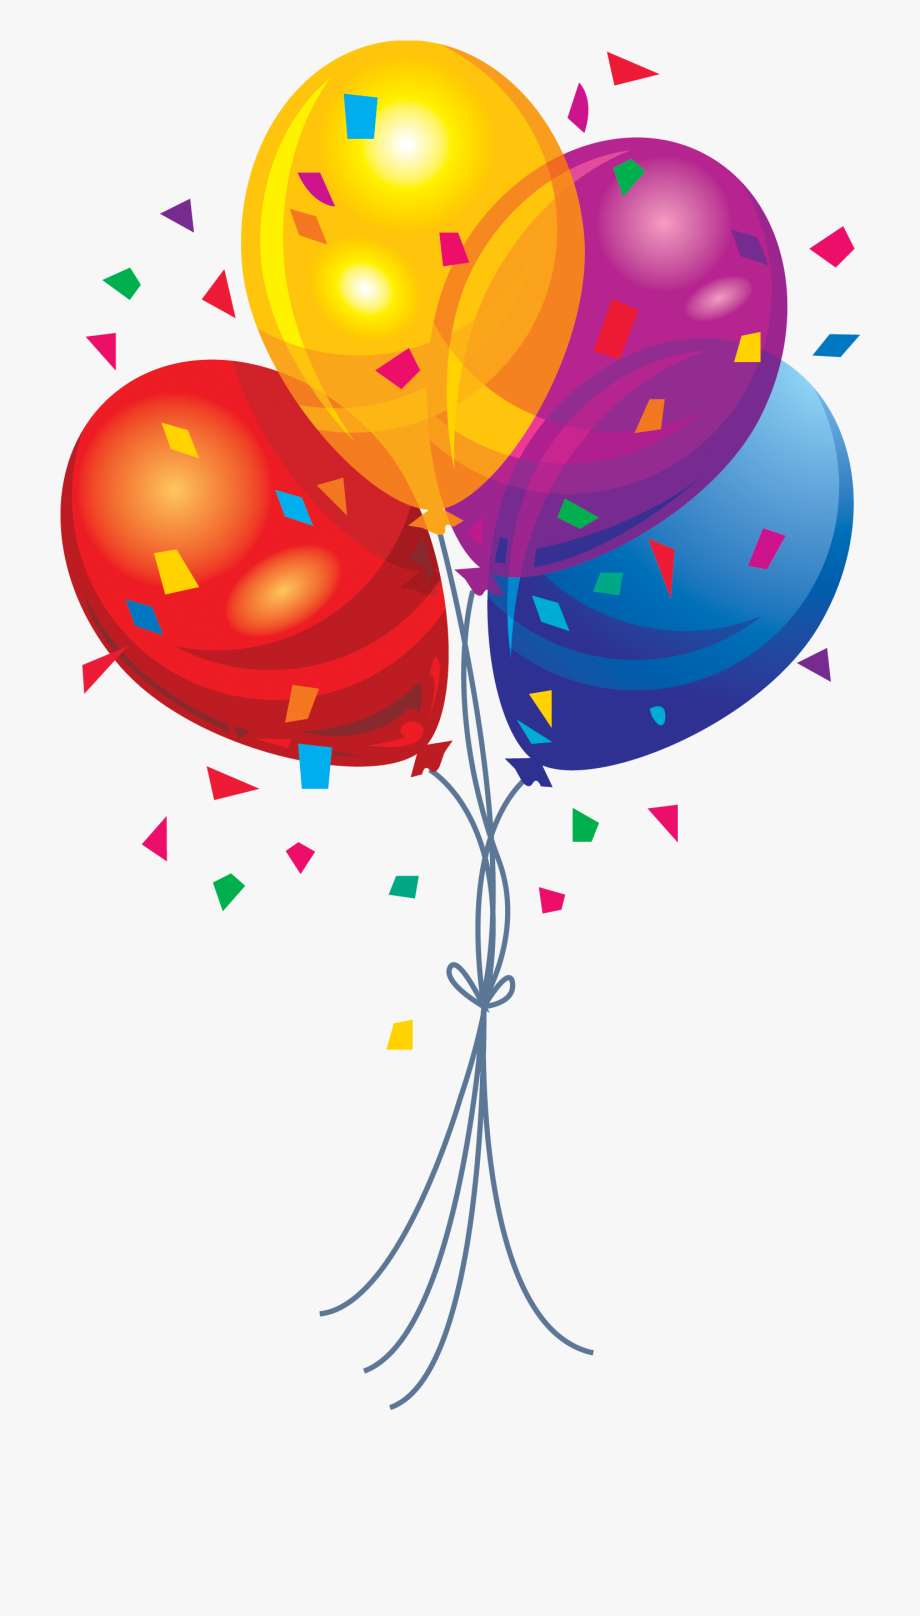 Balloons png image.